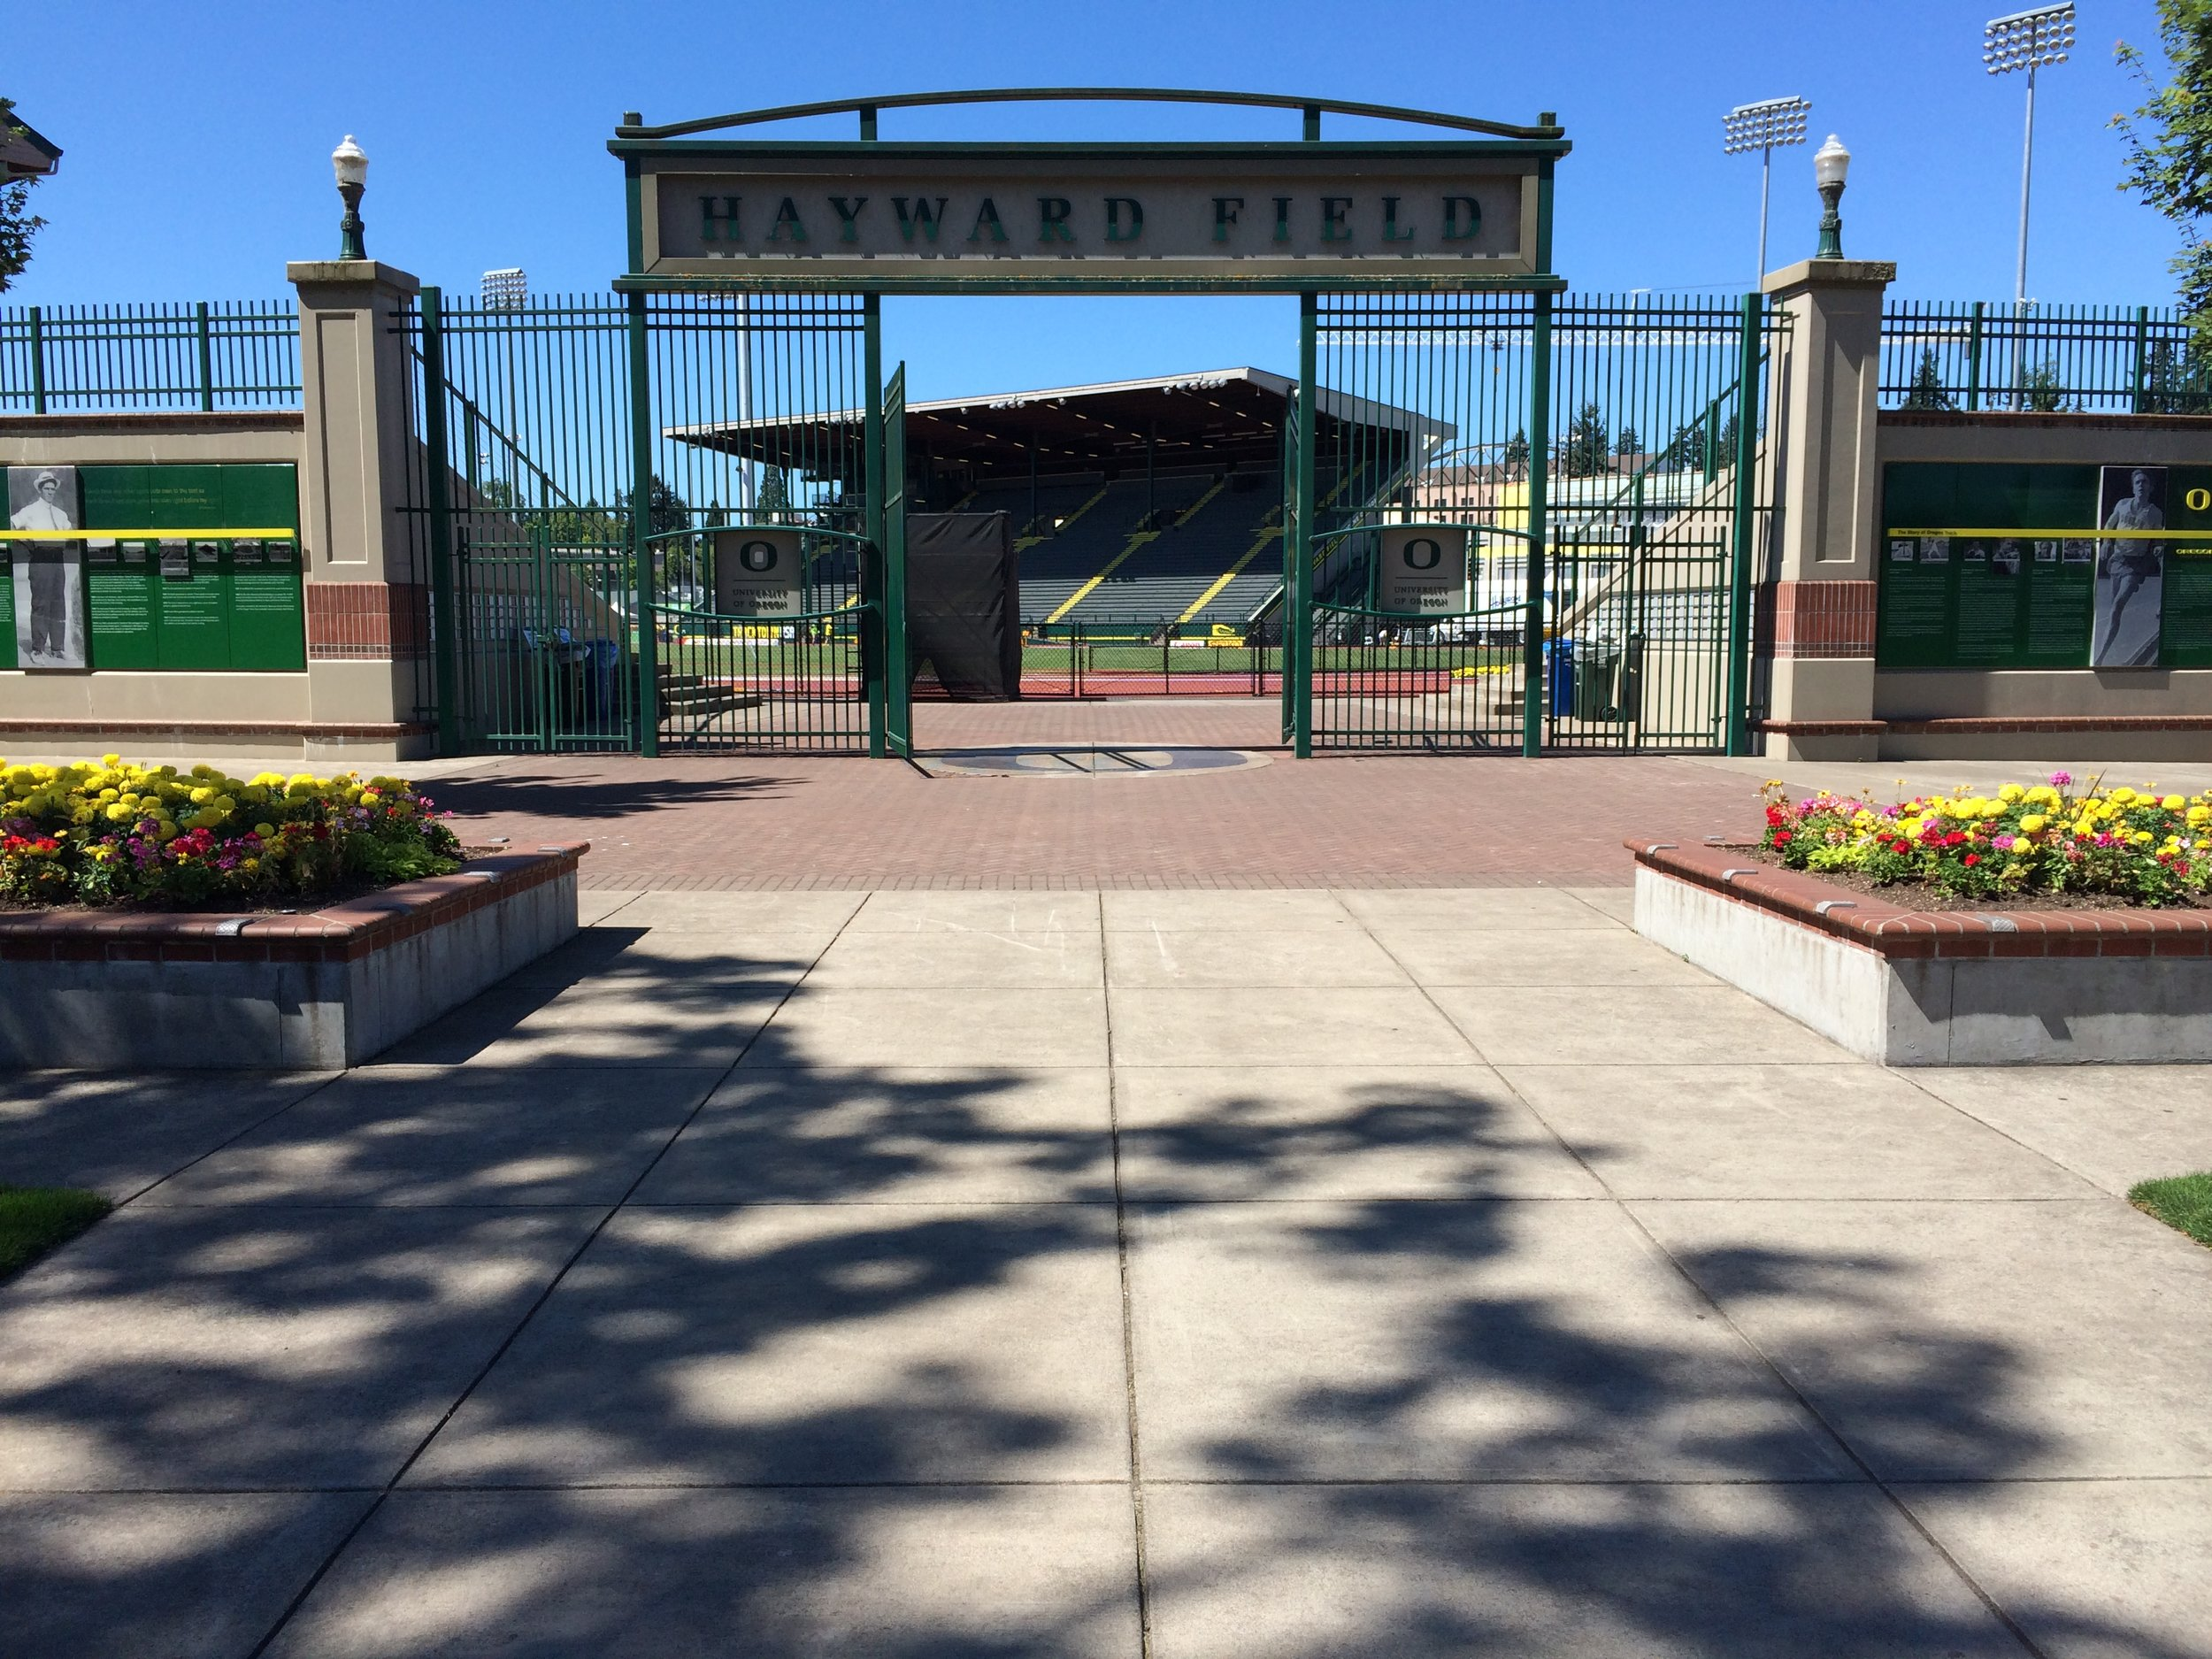 Hayward Field, site of the 2014 world juniors